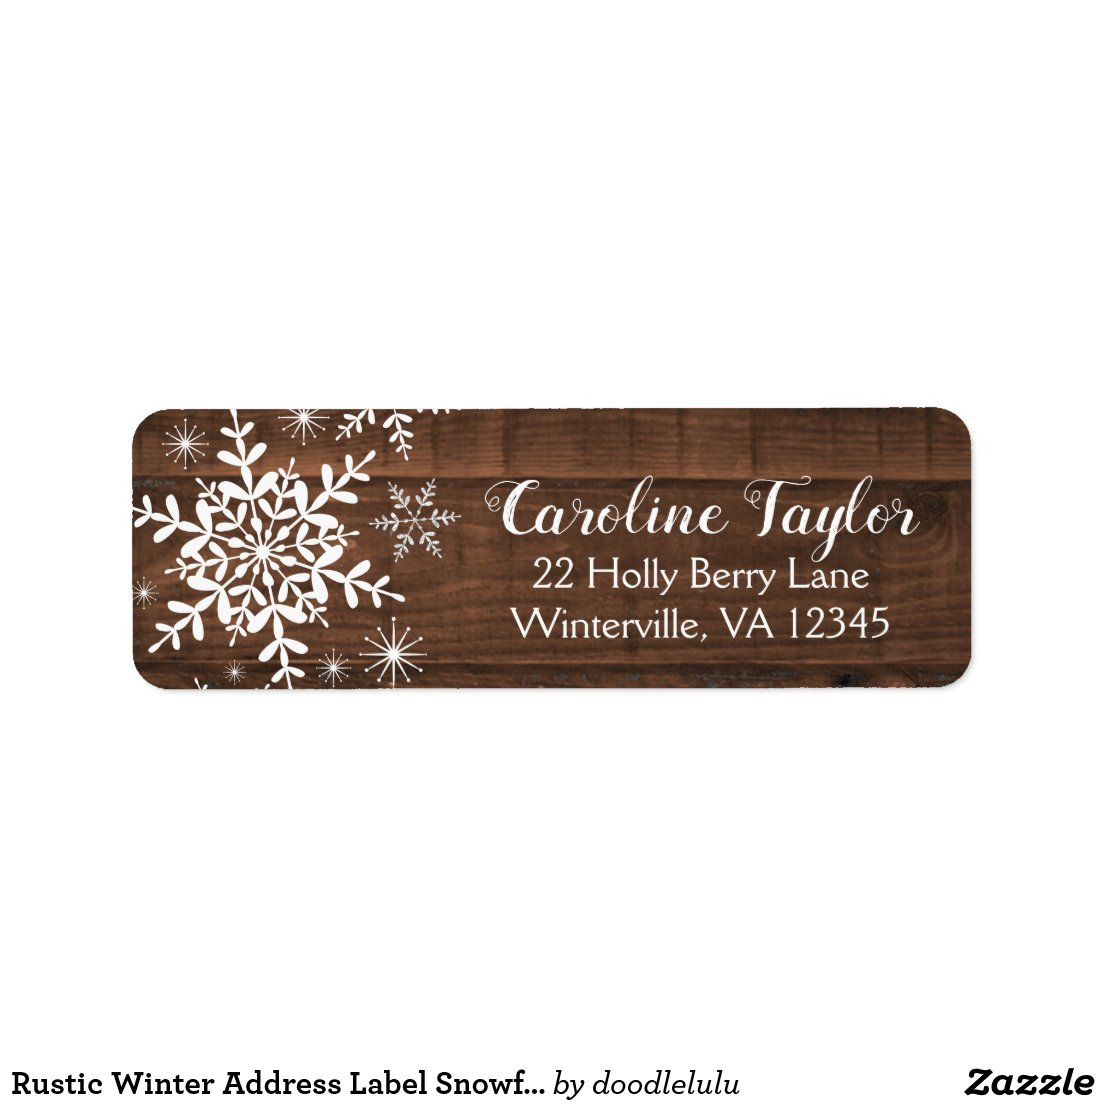 Rustic Winter Address Label Snowflakes on Wood